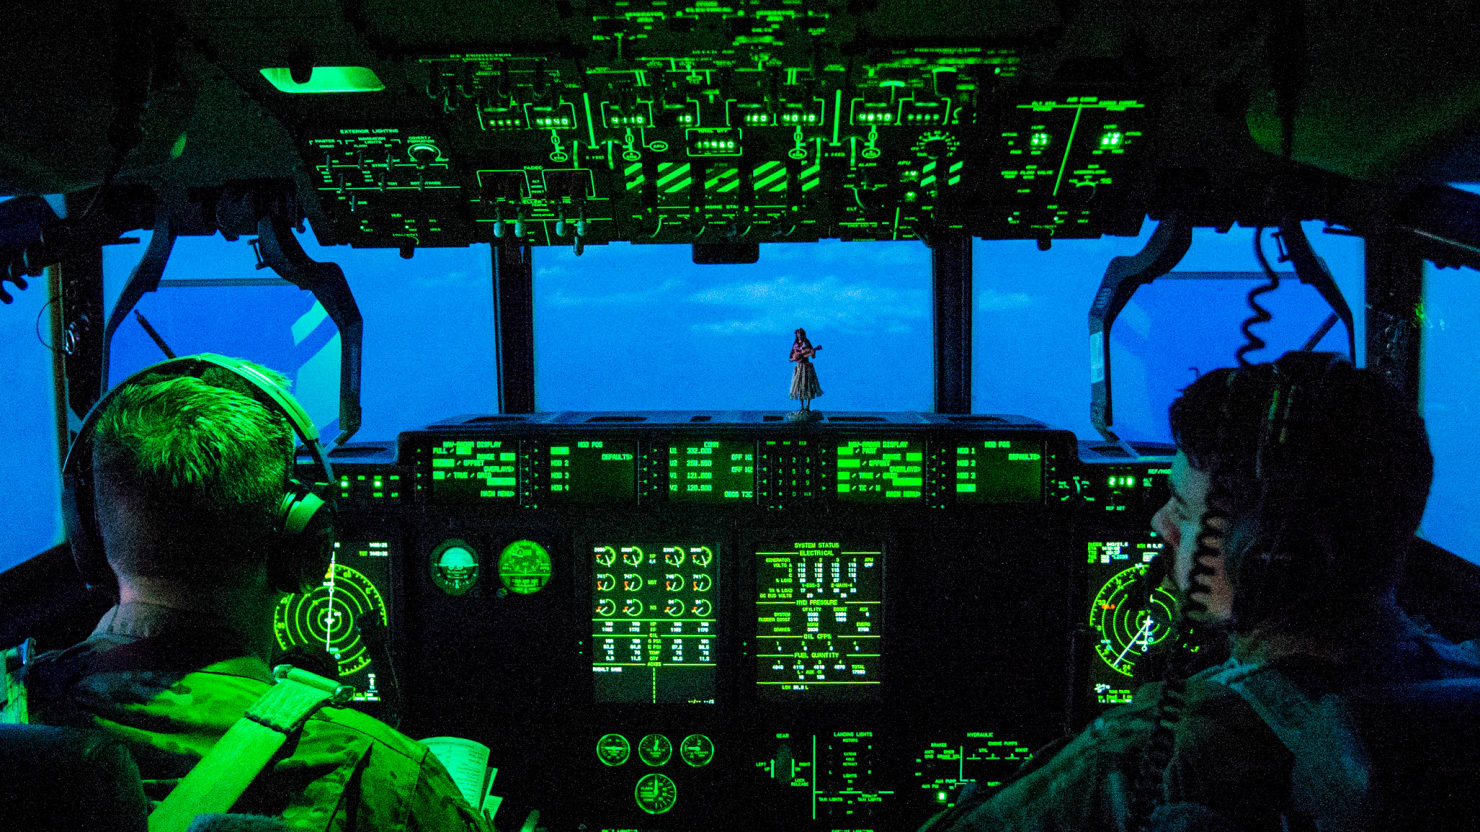 Navy Pilots Report Seeing Unidentified Flying Objects Over East Coast: NYT